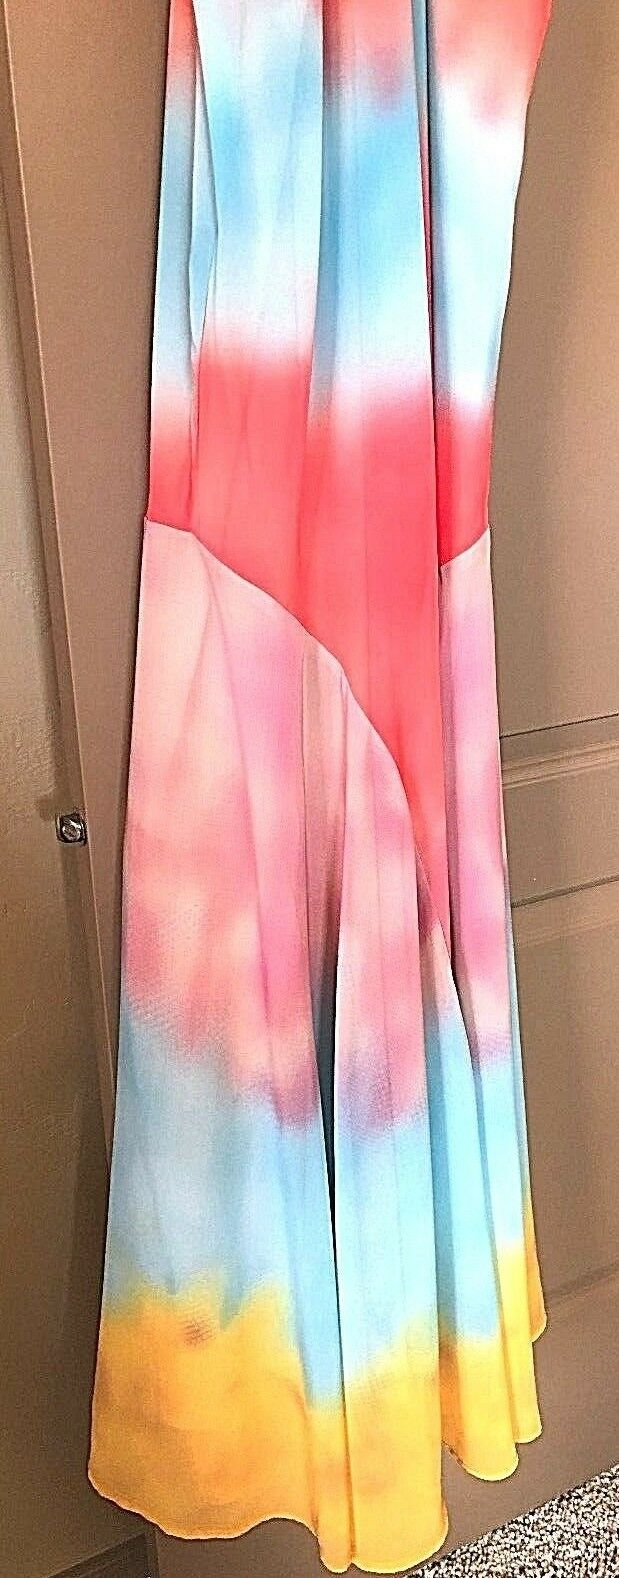 NWT SUNDANCE CATALOG  MAUNA LOA HALTER TOP DRESS- SIZE 12 LEFT   ORIG..   188.00